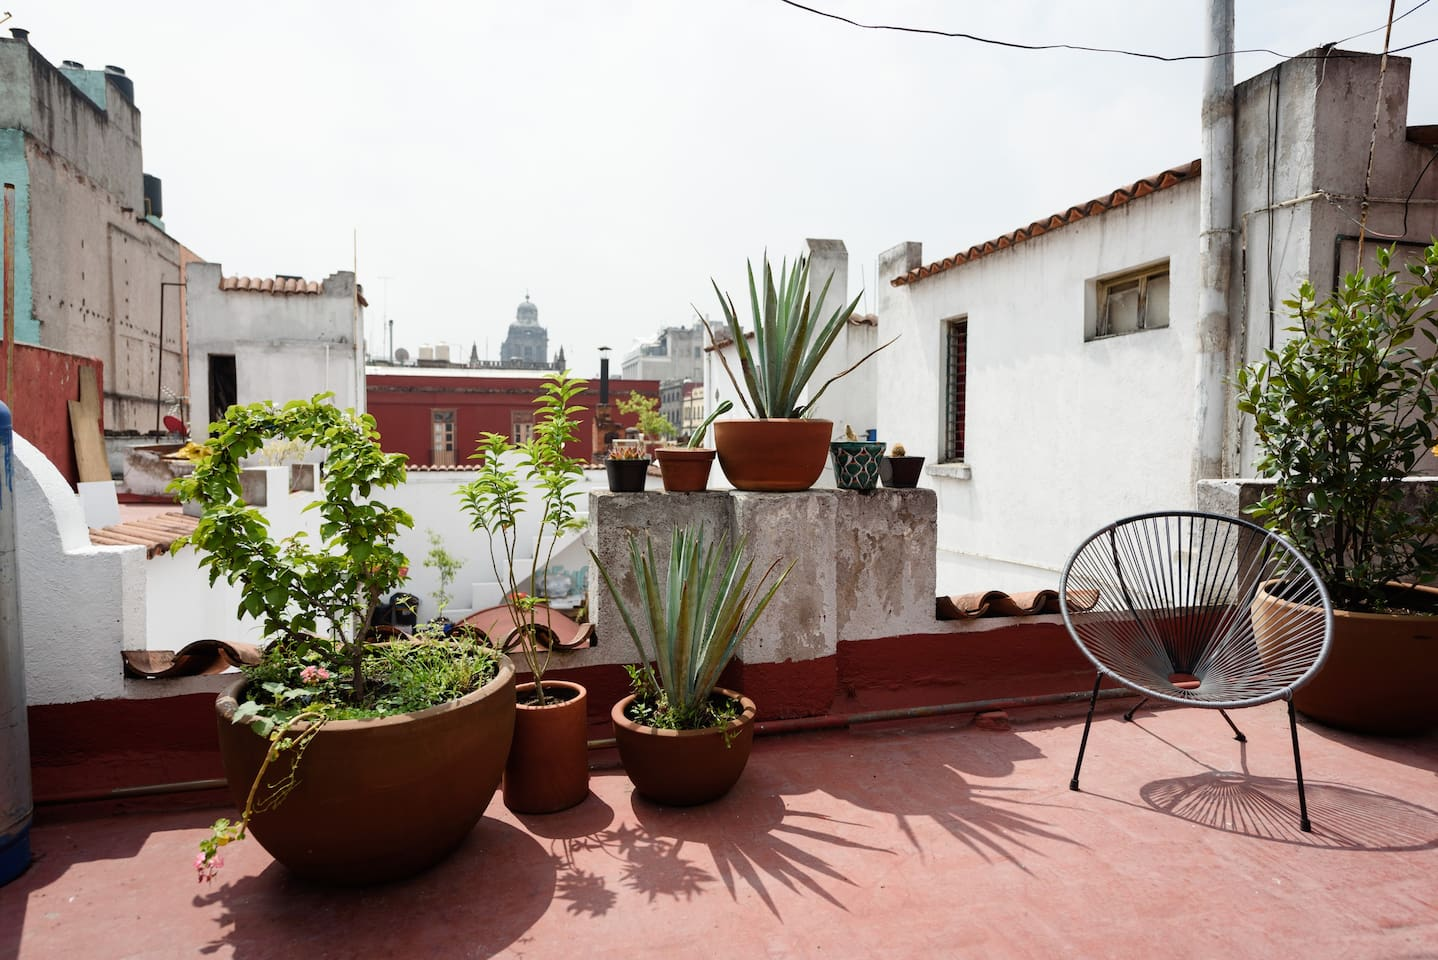 Beautiful and private space one block from the Zócalo - the origin & corazón of Mexico.